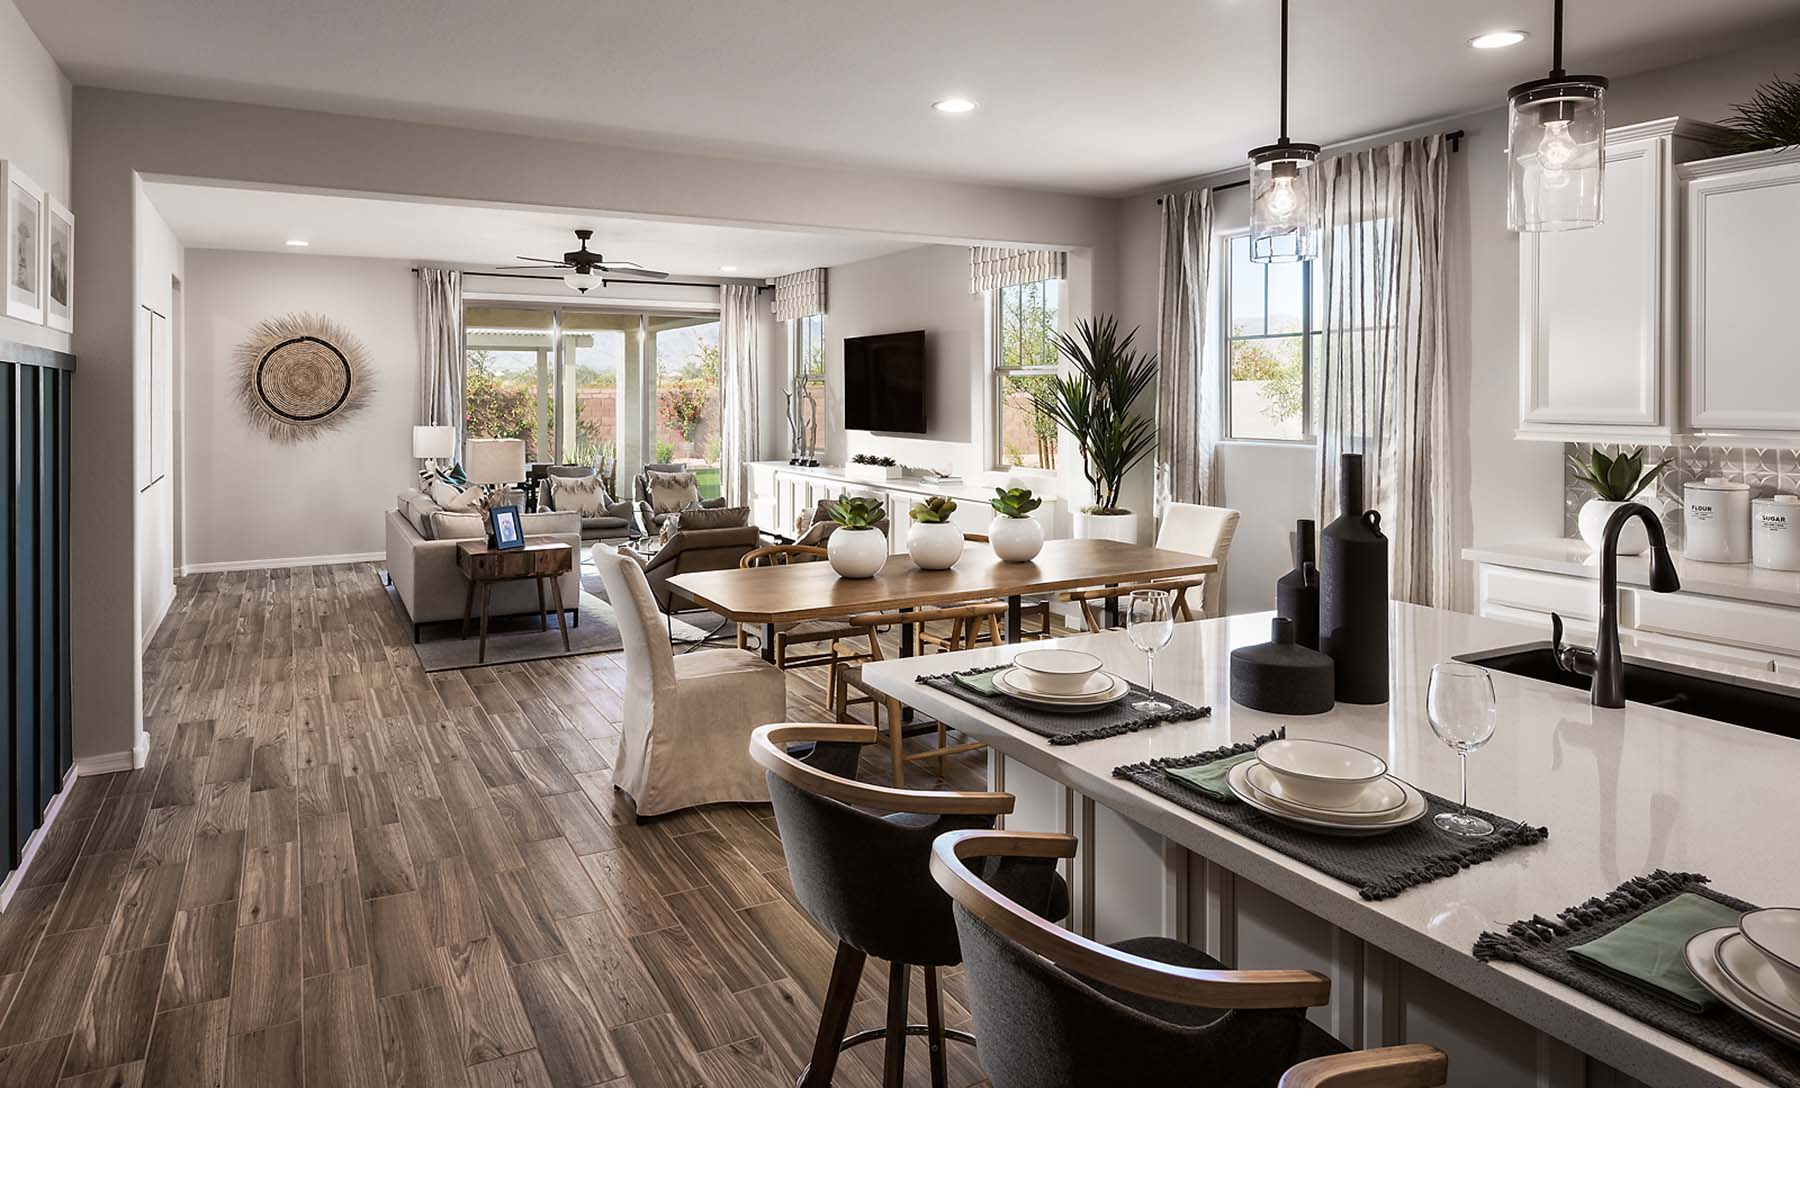 Malone Estates Greatroom in Queen Creek Arizona by Mattamy Homes